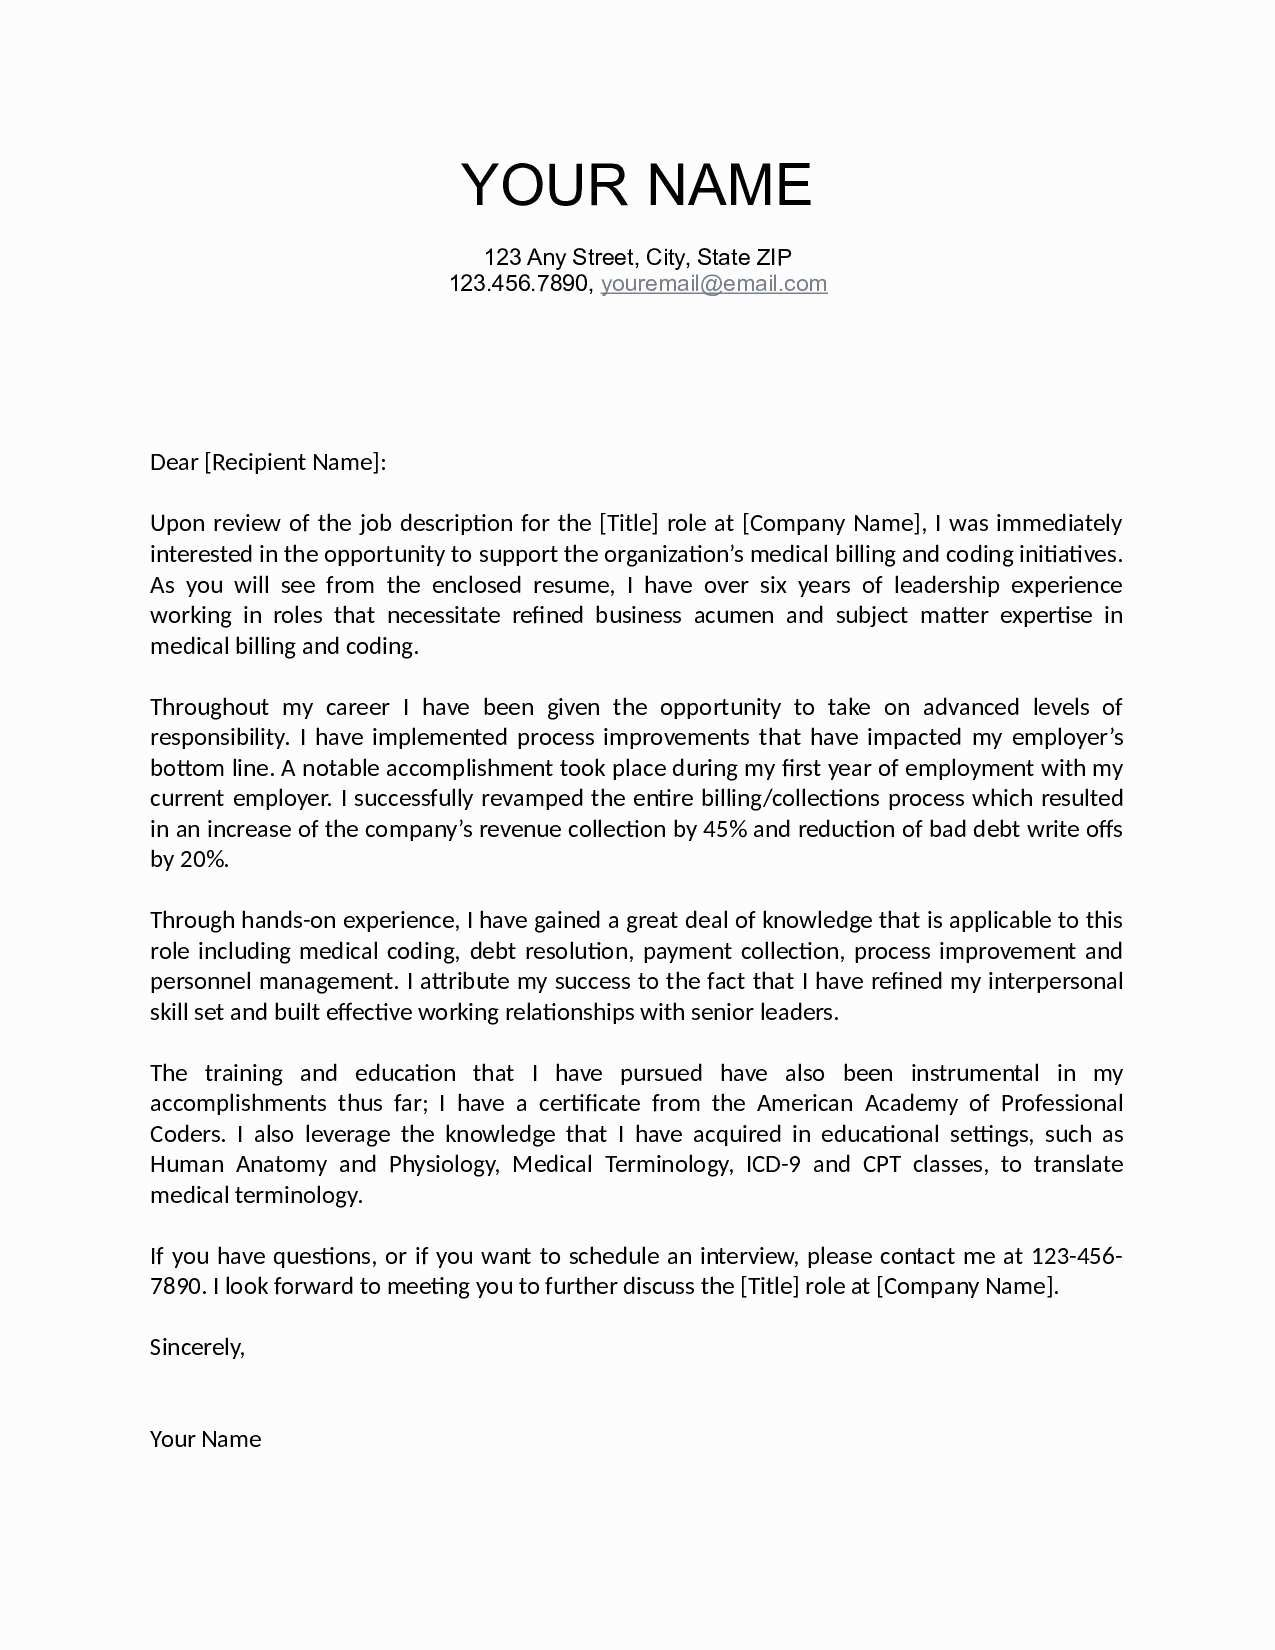 Security Cover Letter Template - Covering Letter for Work Experience Best Job Fer Letter Template